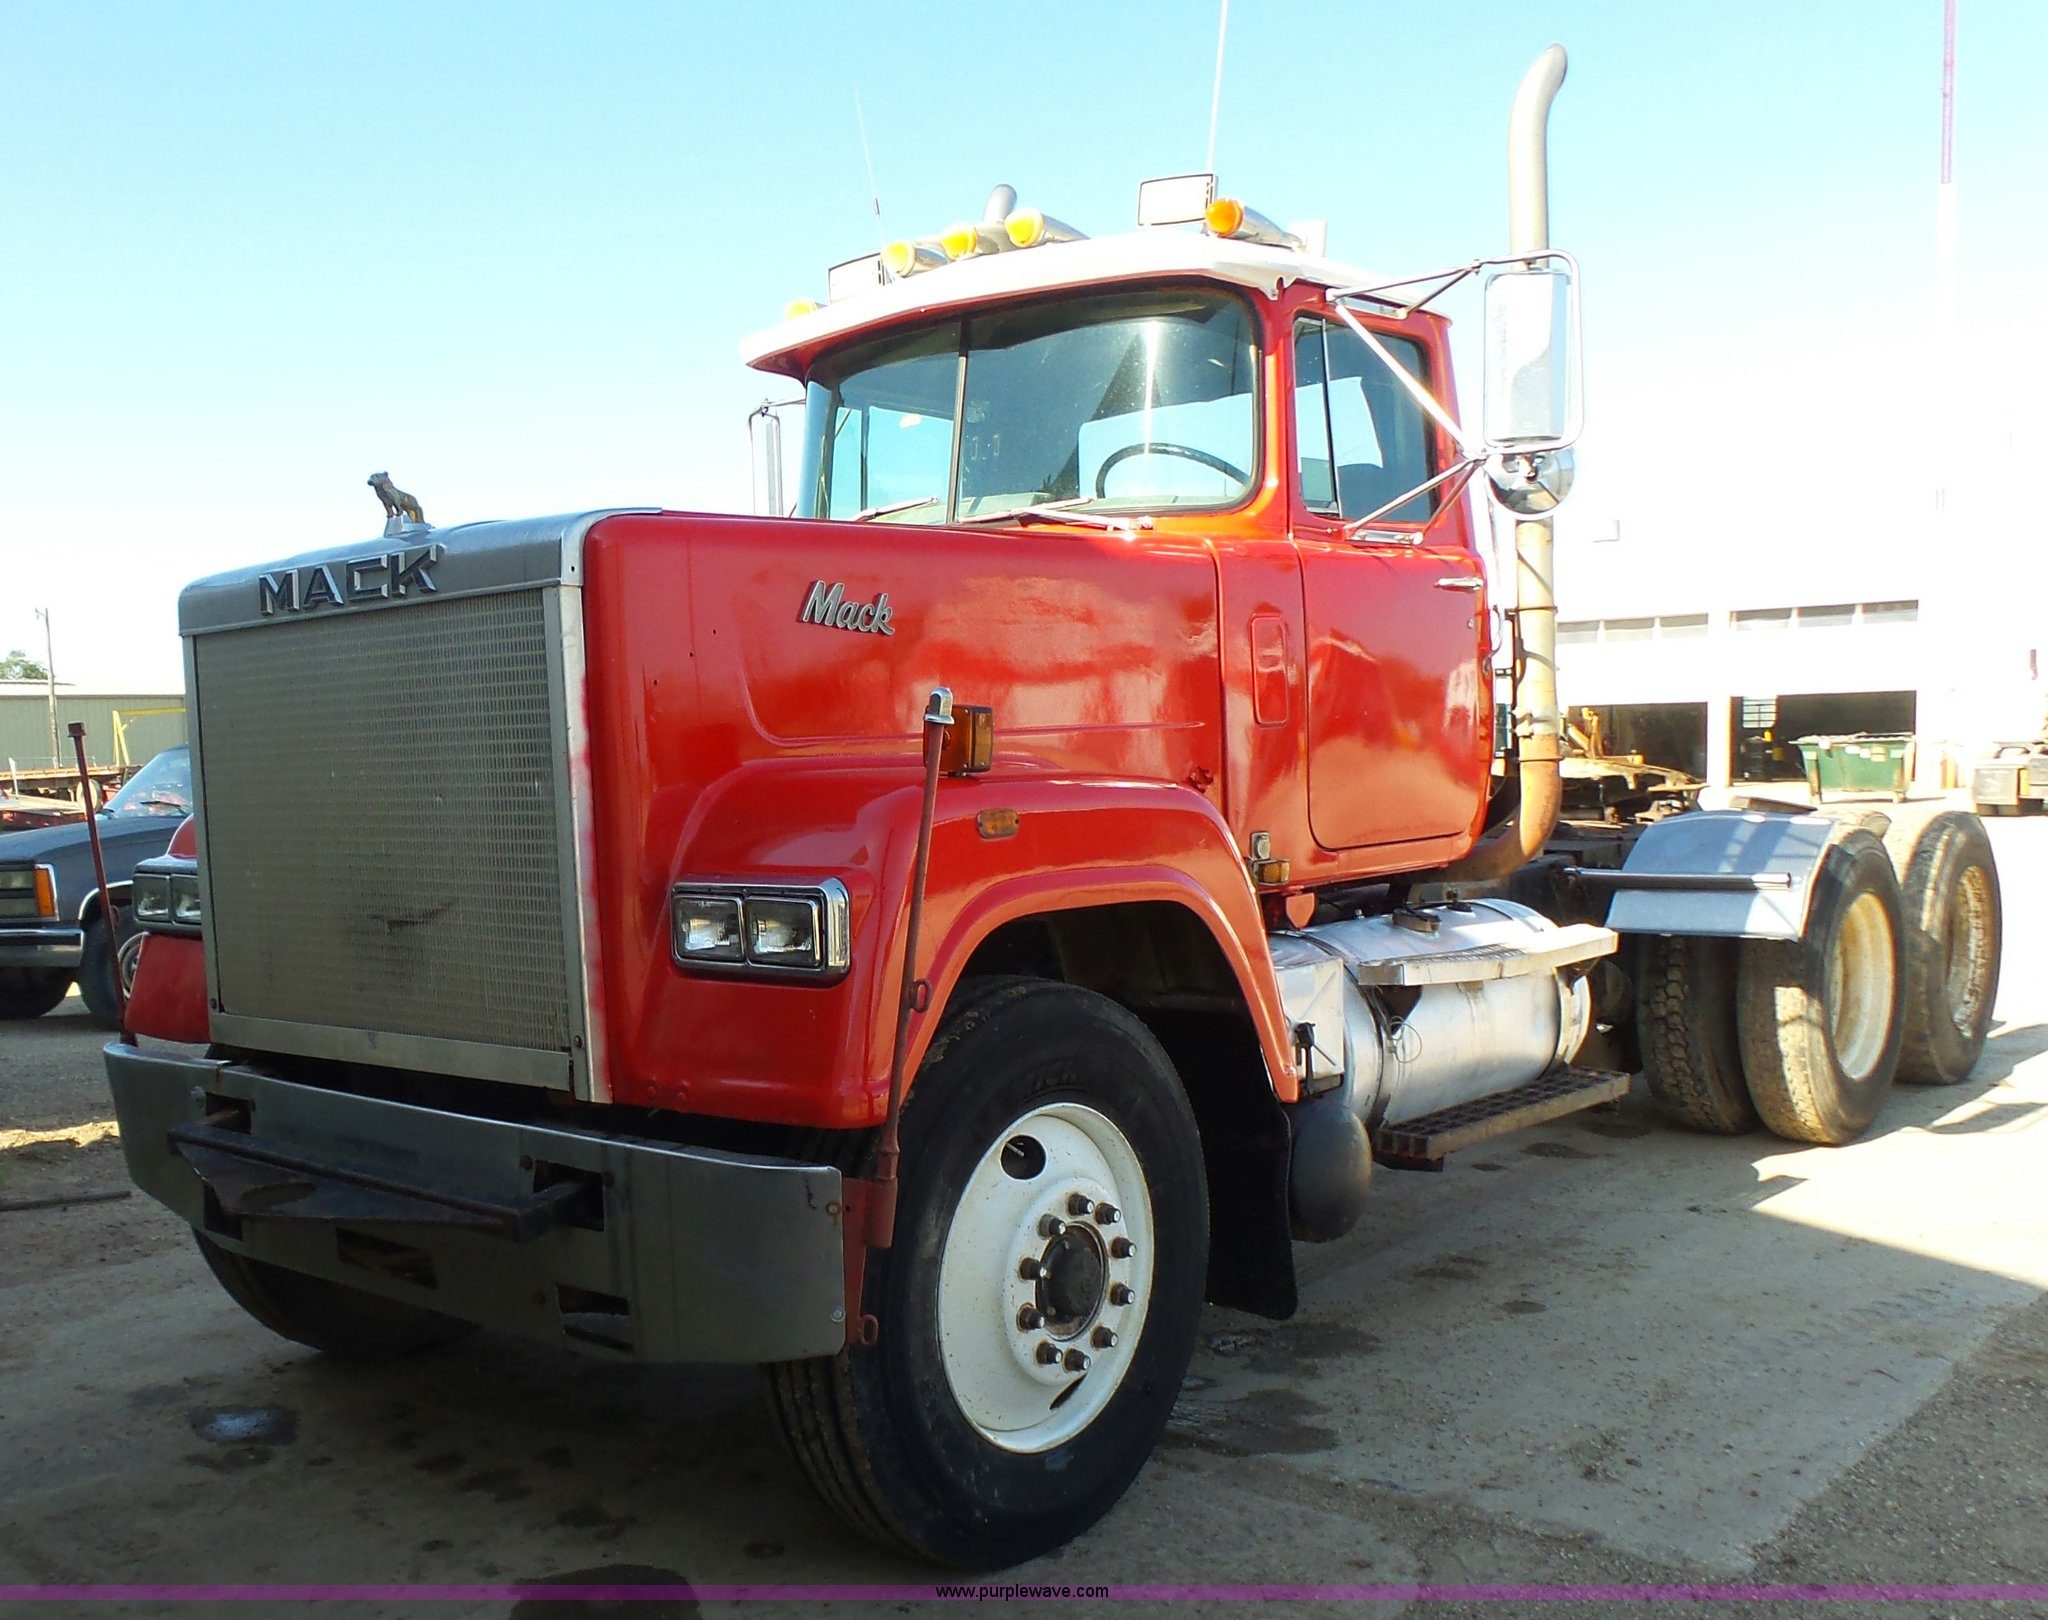 1986 Mack Superliner RW613 semi truck | Item K3115 | SOLD! S